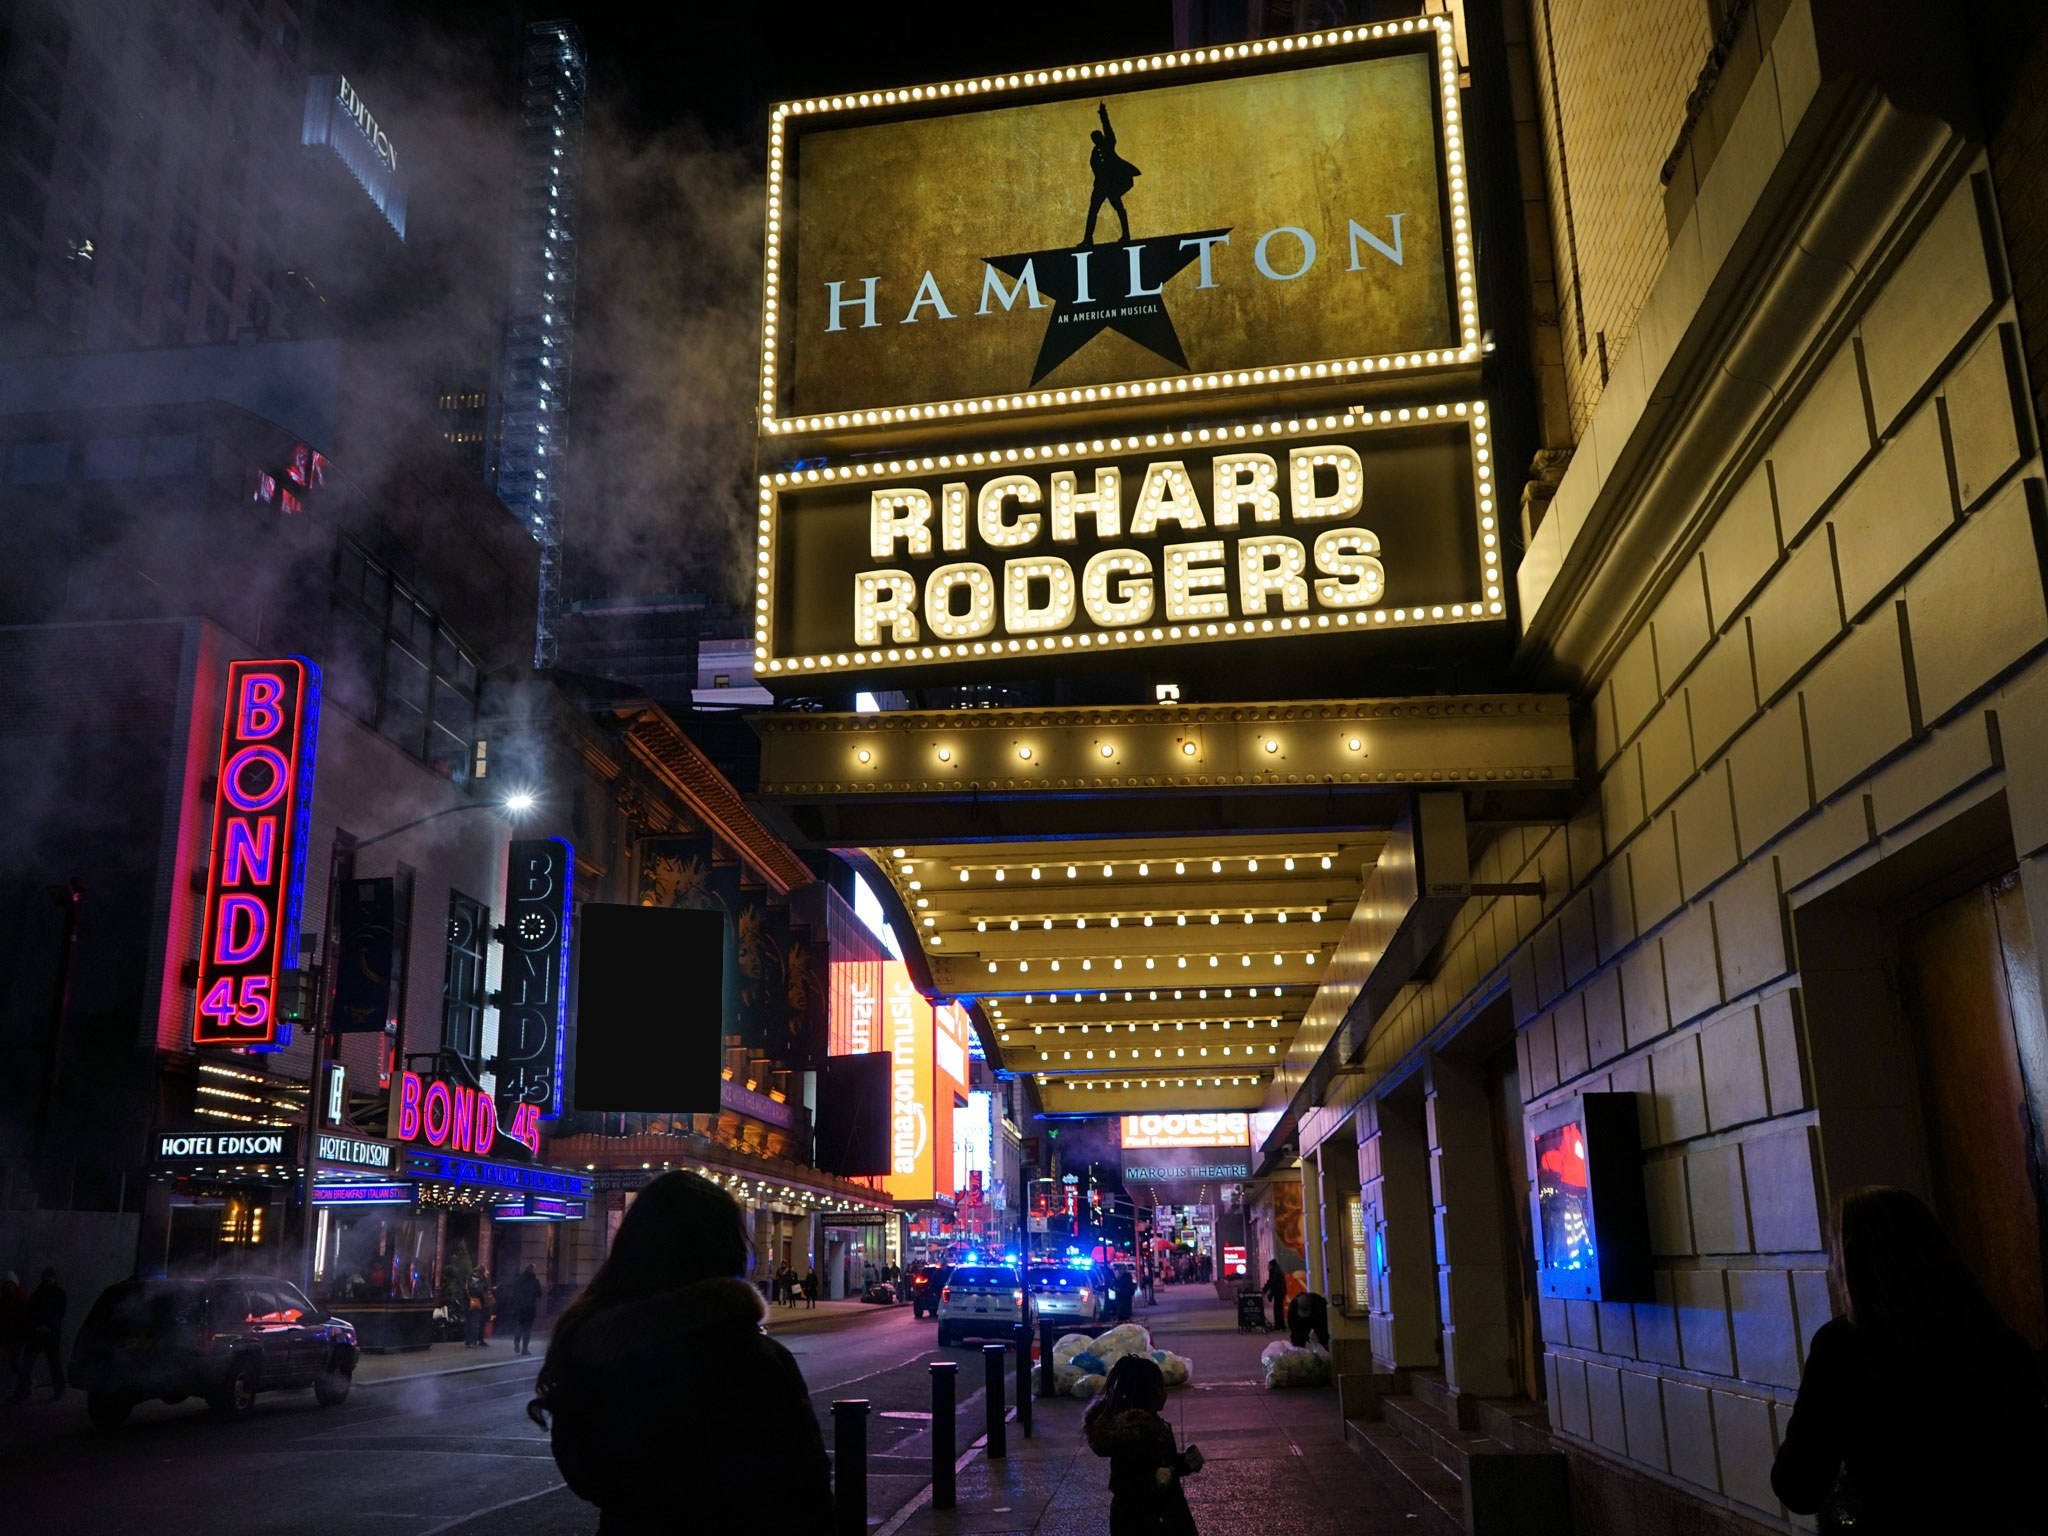 Hamilton Richard Rodgers Broadway Theatre Marquee